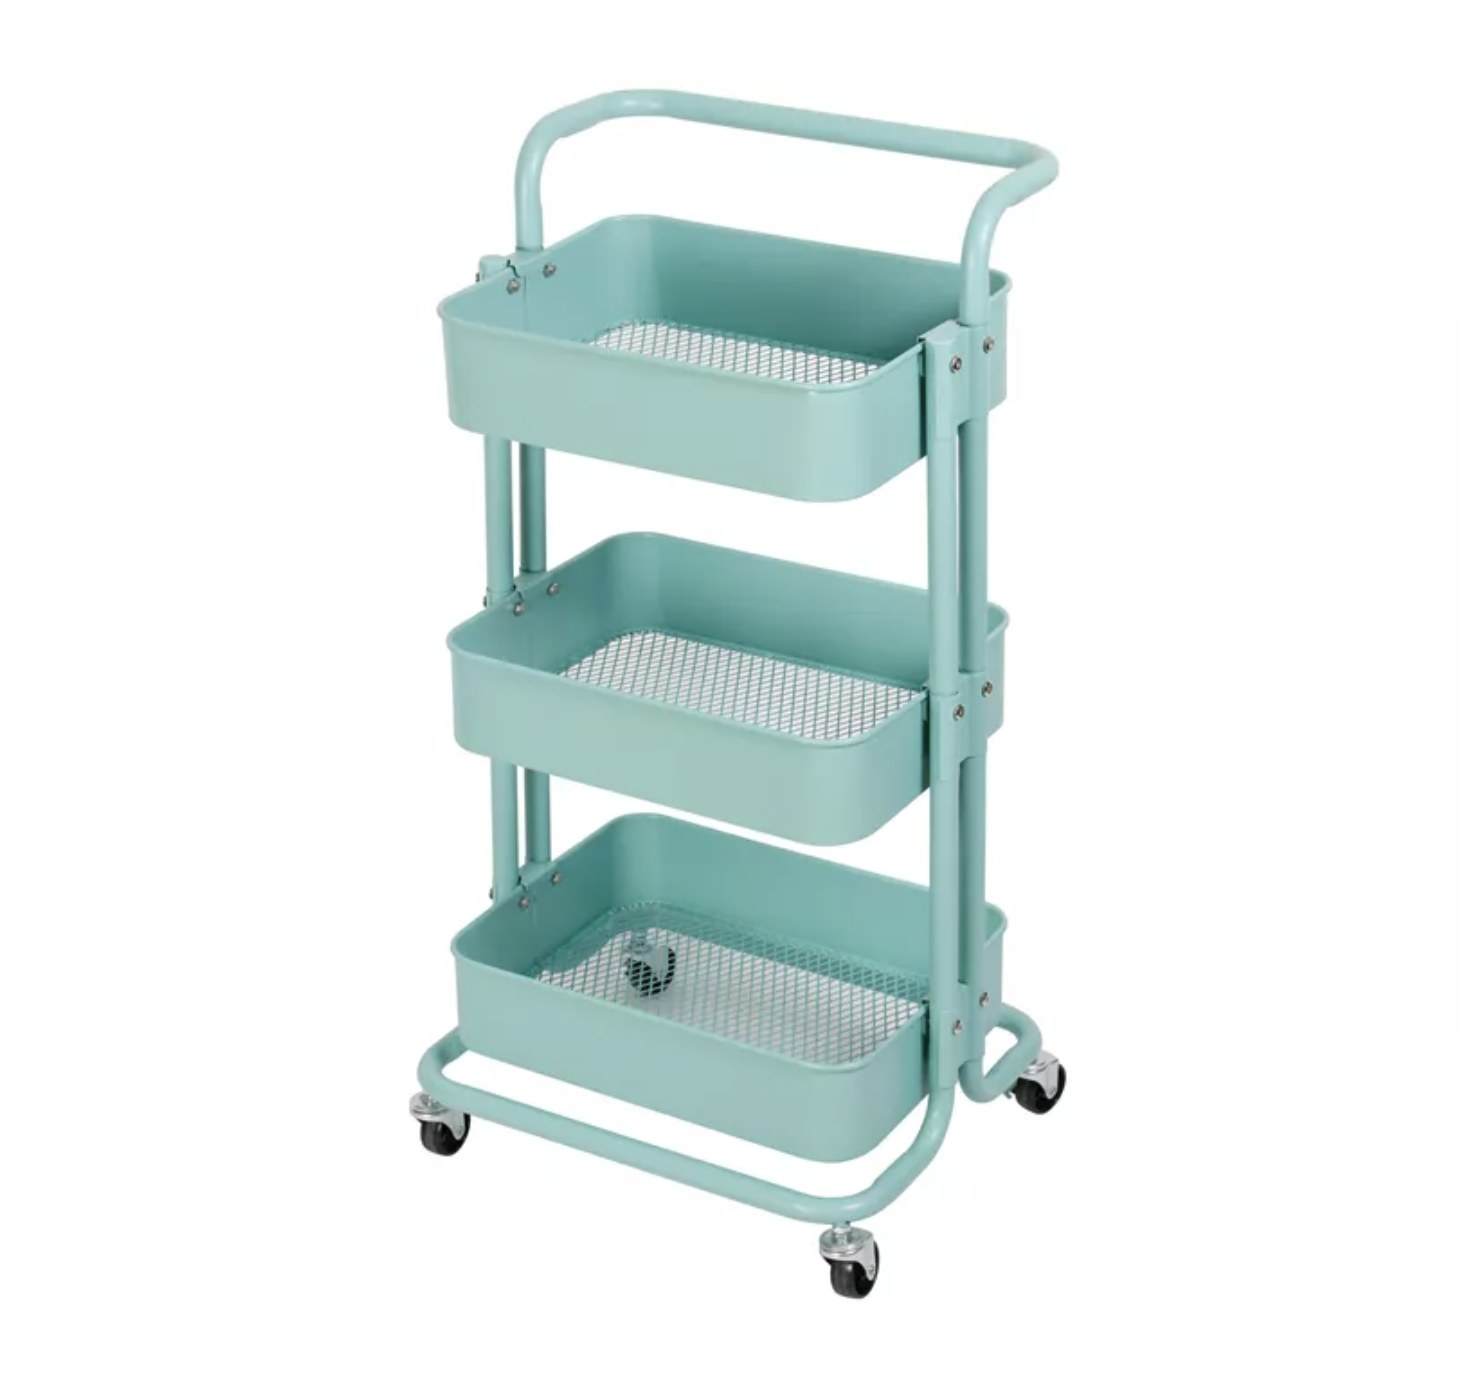 A mint three-tier storage caddy